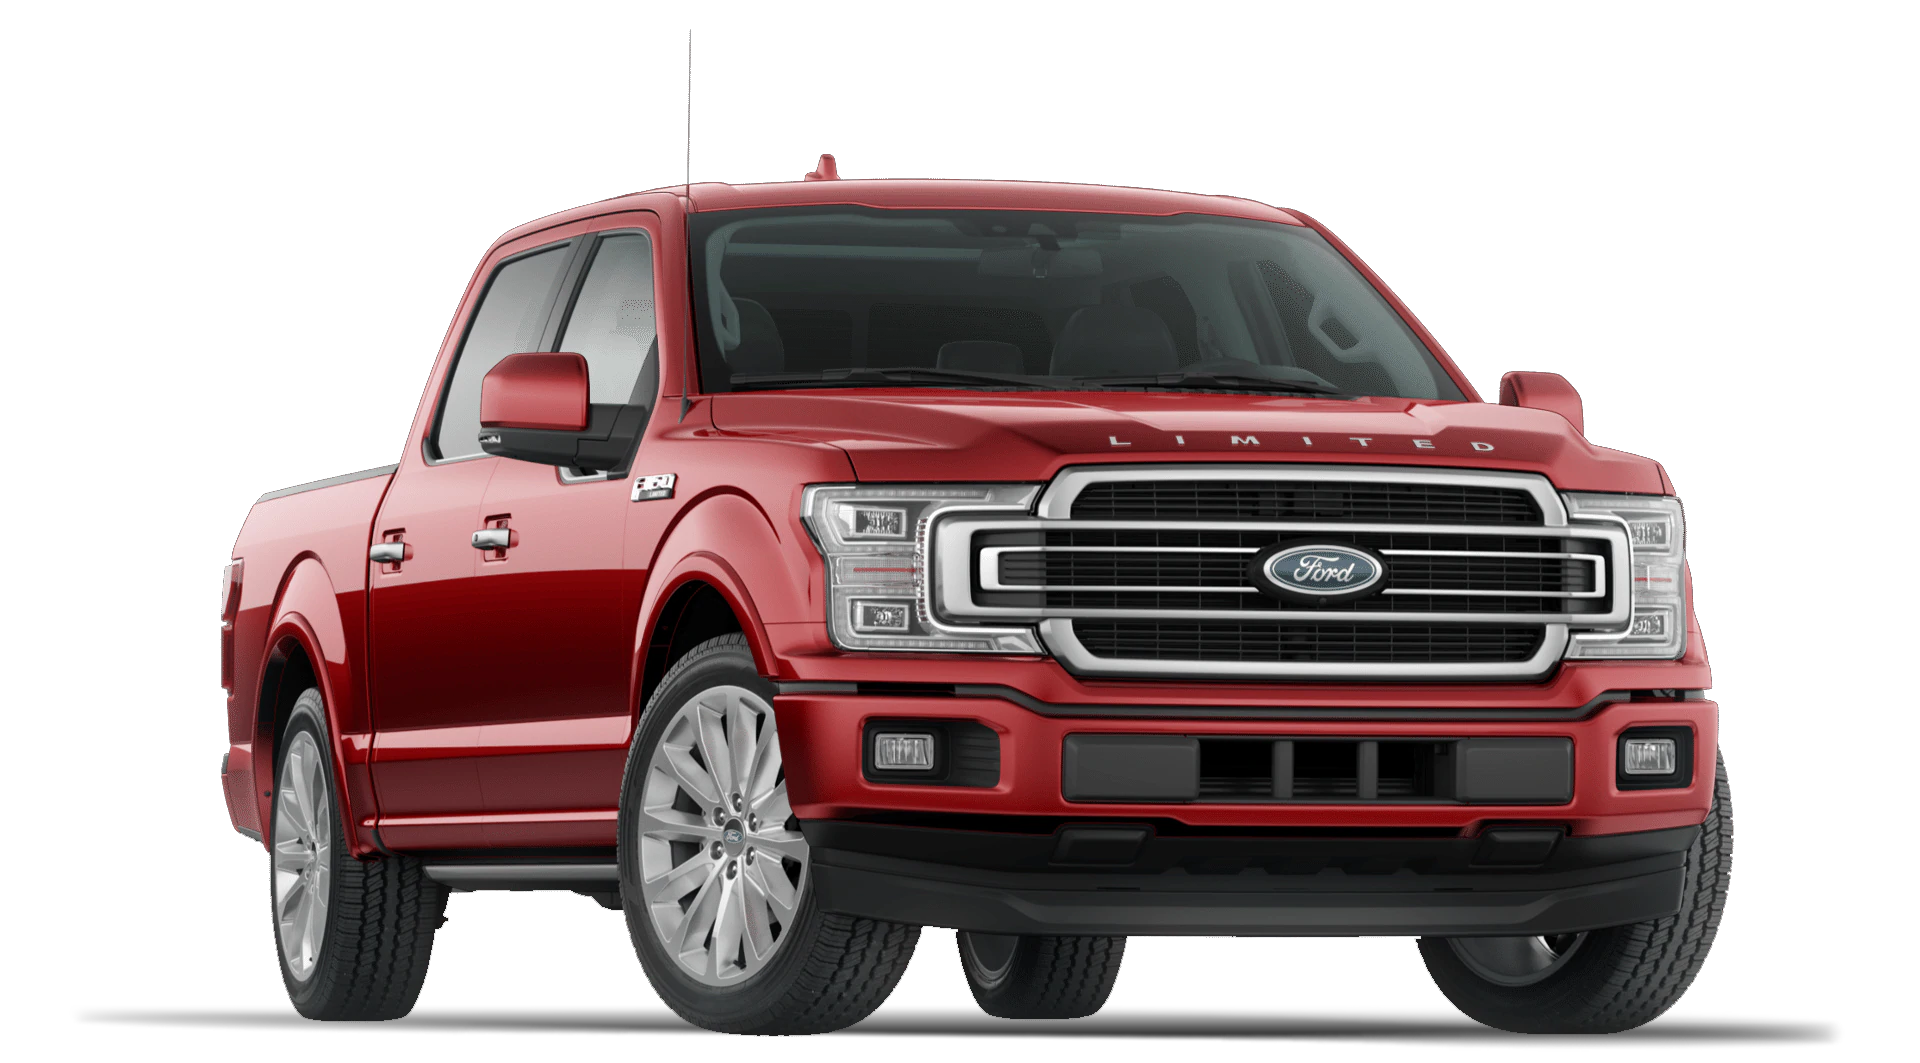 2020 Ford F150 Limited Trim with SuperCrew Cab in Rapid Red Exterior with Trailer Tow Package